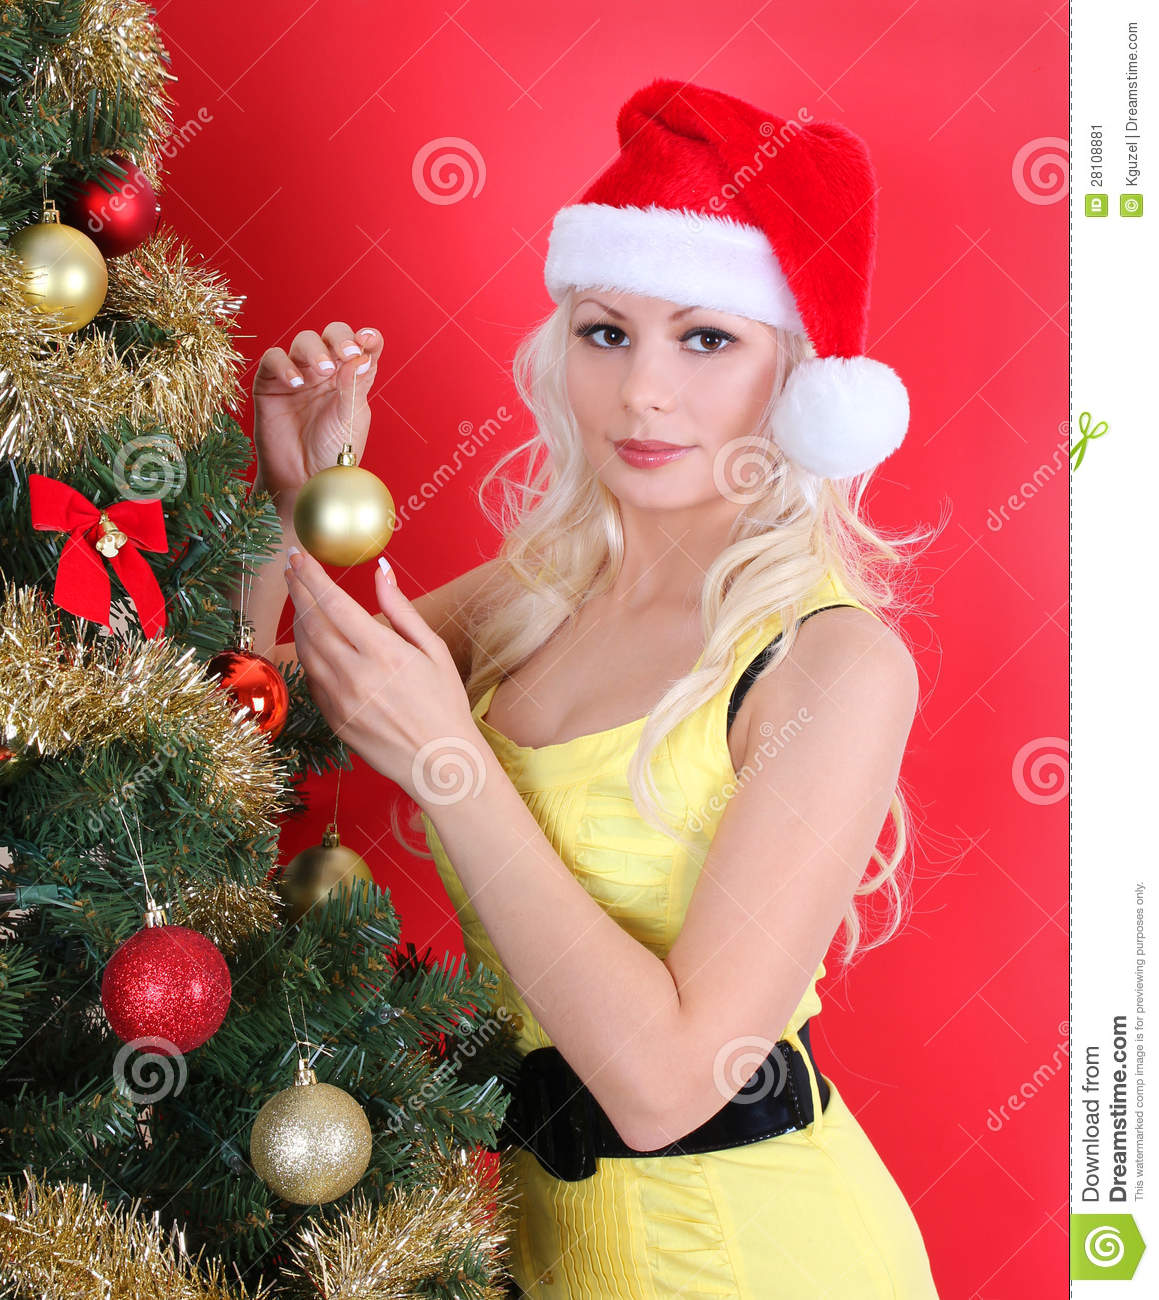 Young Woman In Santa Hat Decorating Christmas Tree Over